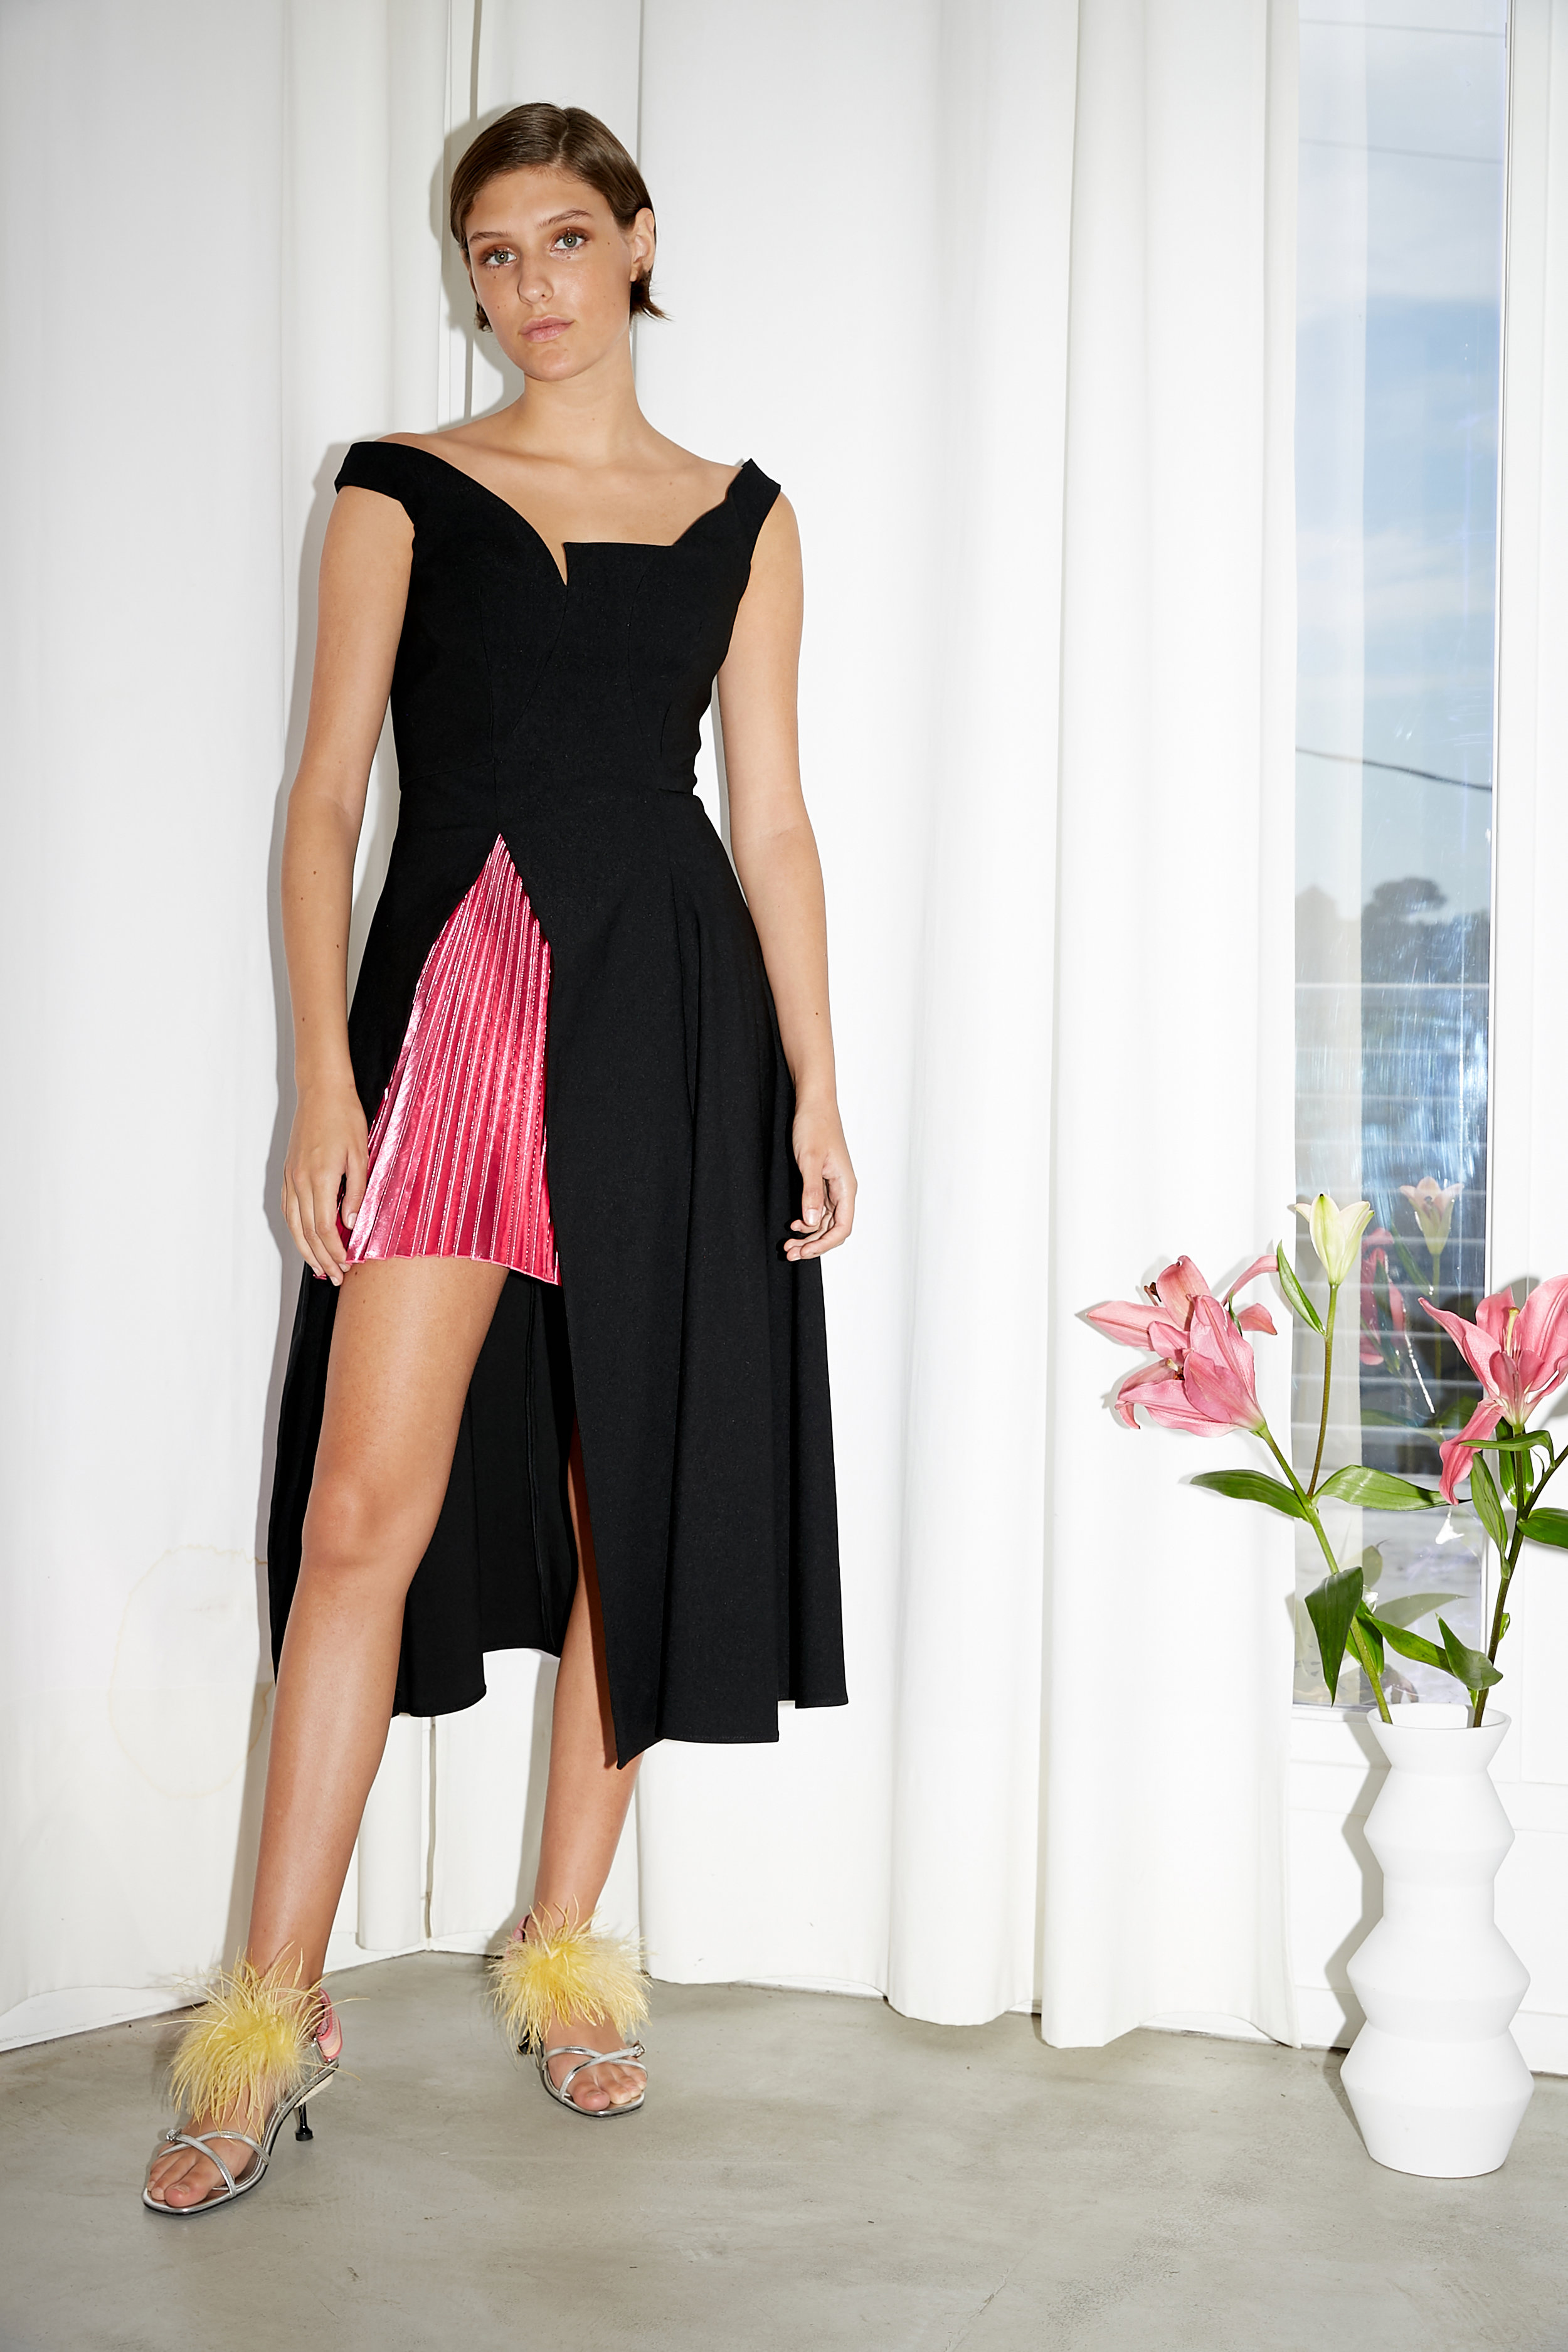 Model stands in black sleeveless dress with asymmetric neckline and high slit at hem revealing metallic pleated underskirt